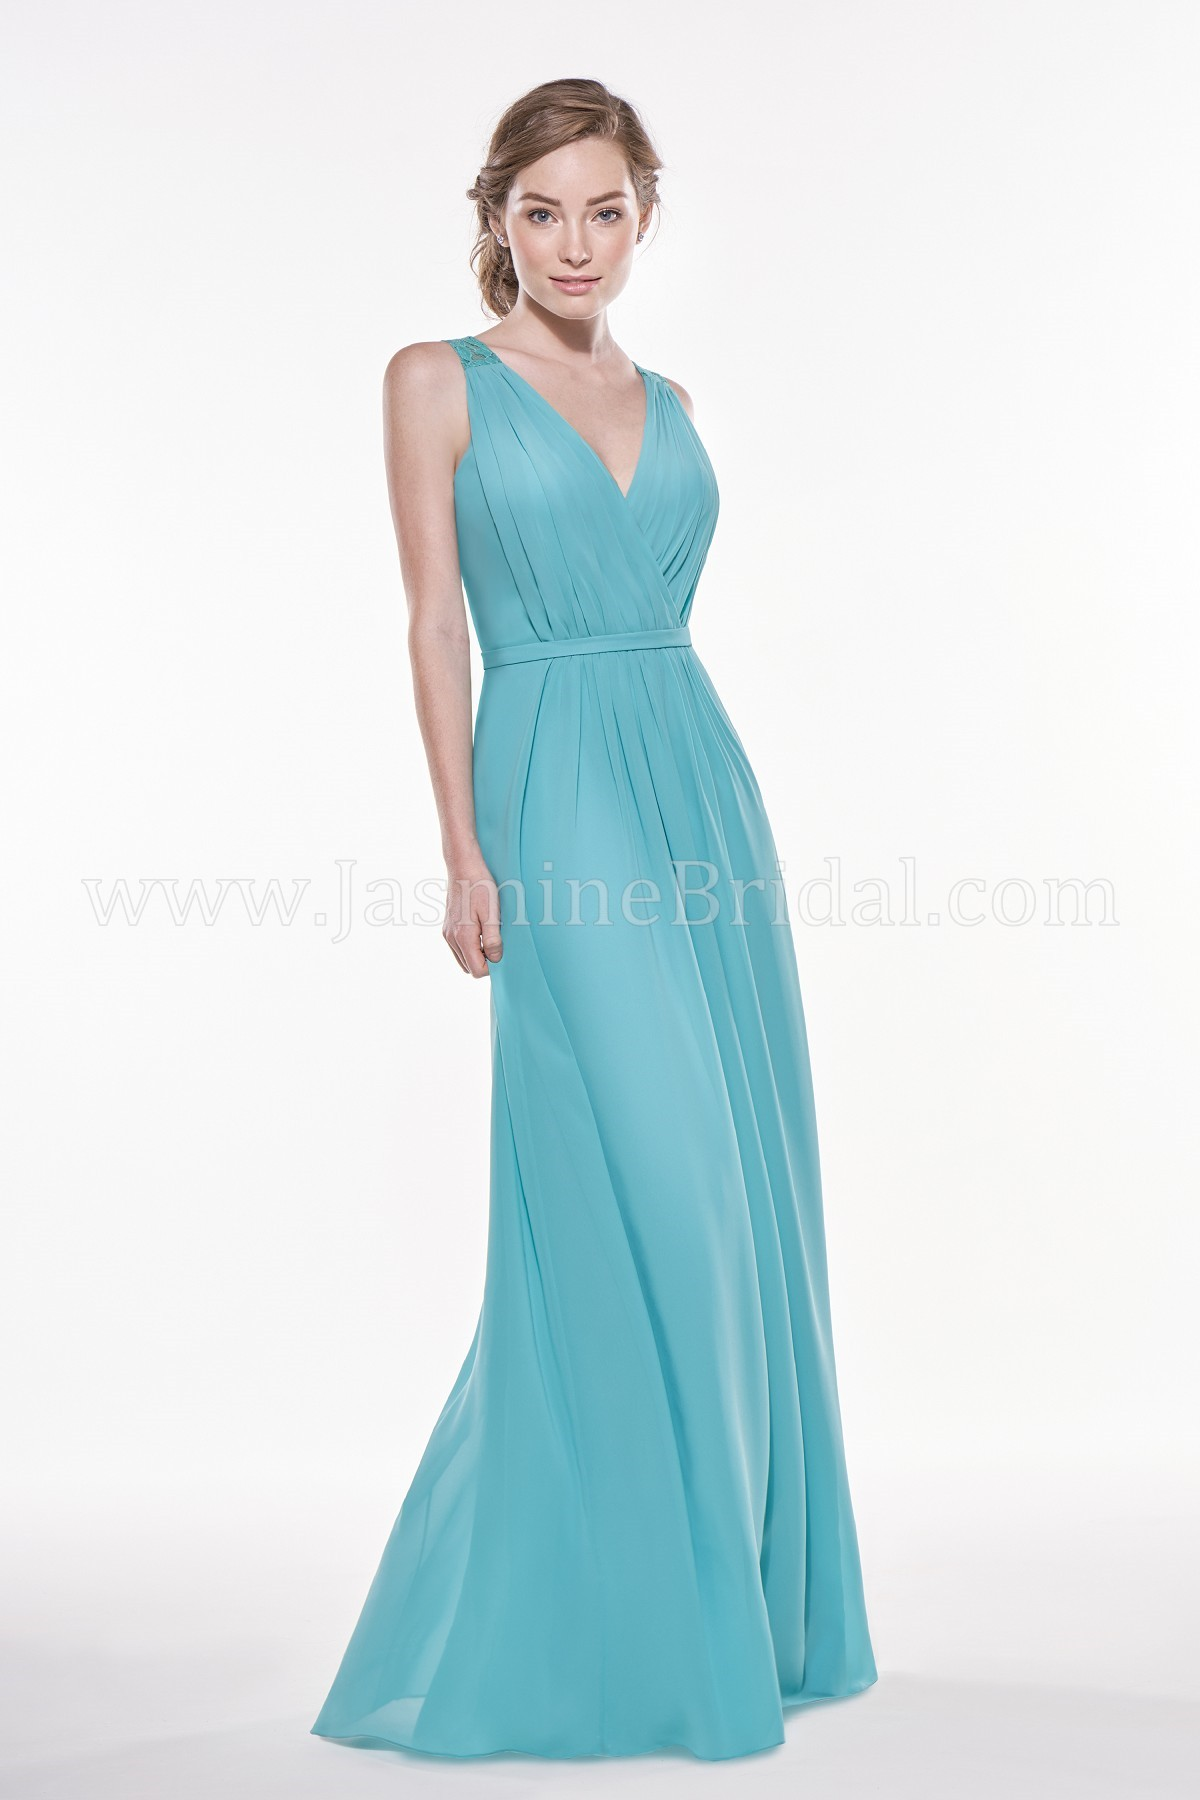 P196009 long v neck georgette w lace bridesmaid dress ombrellifo Image collections